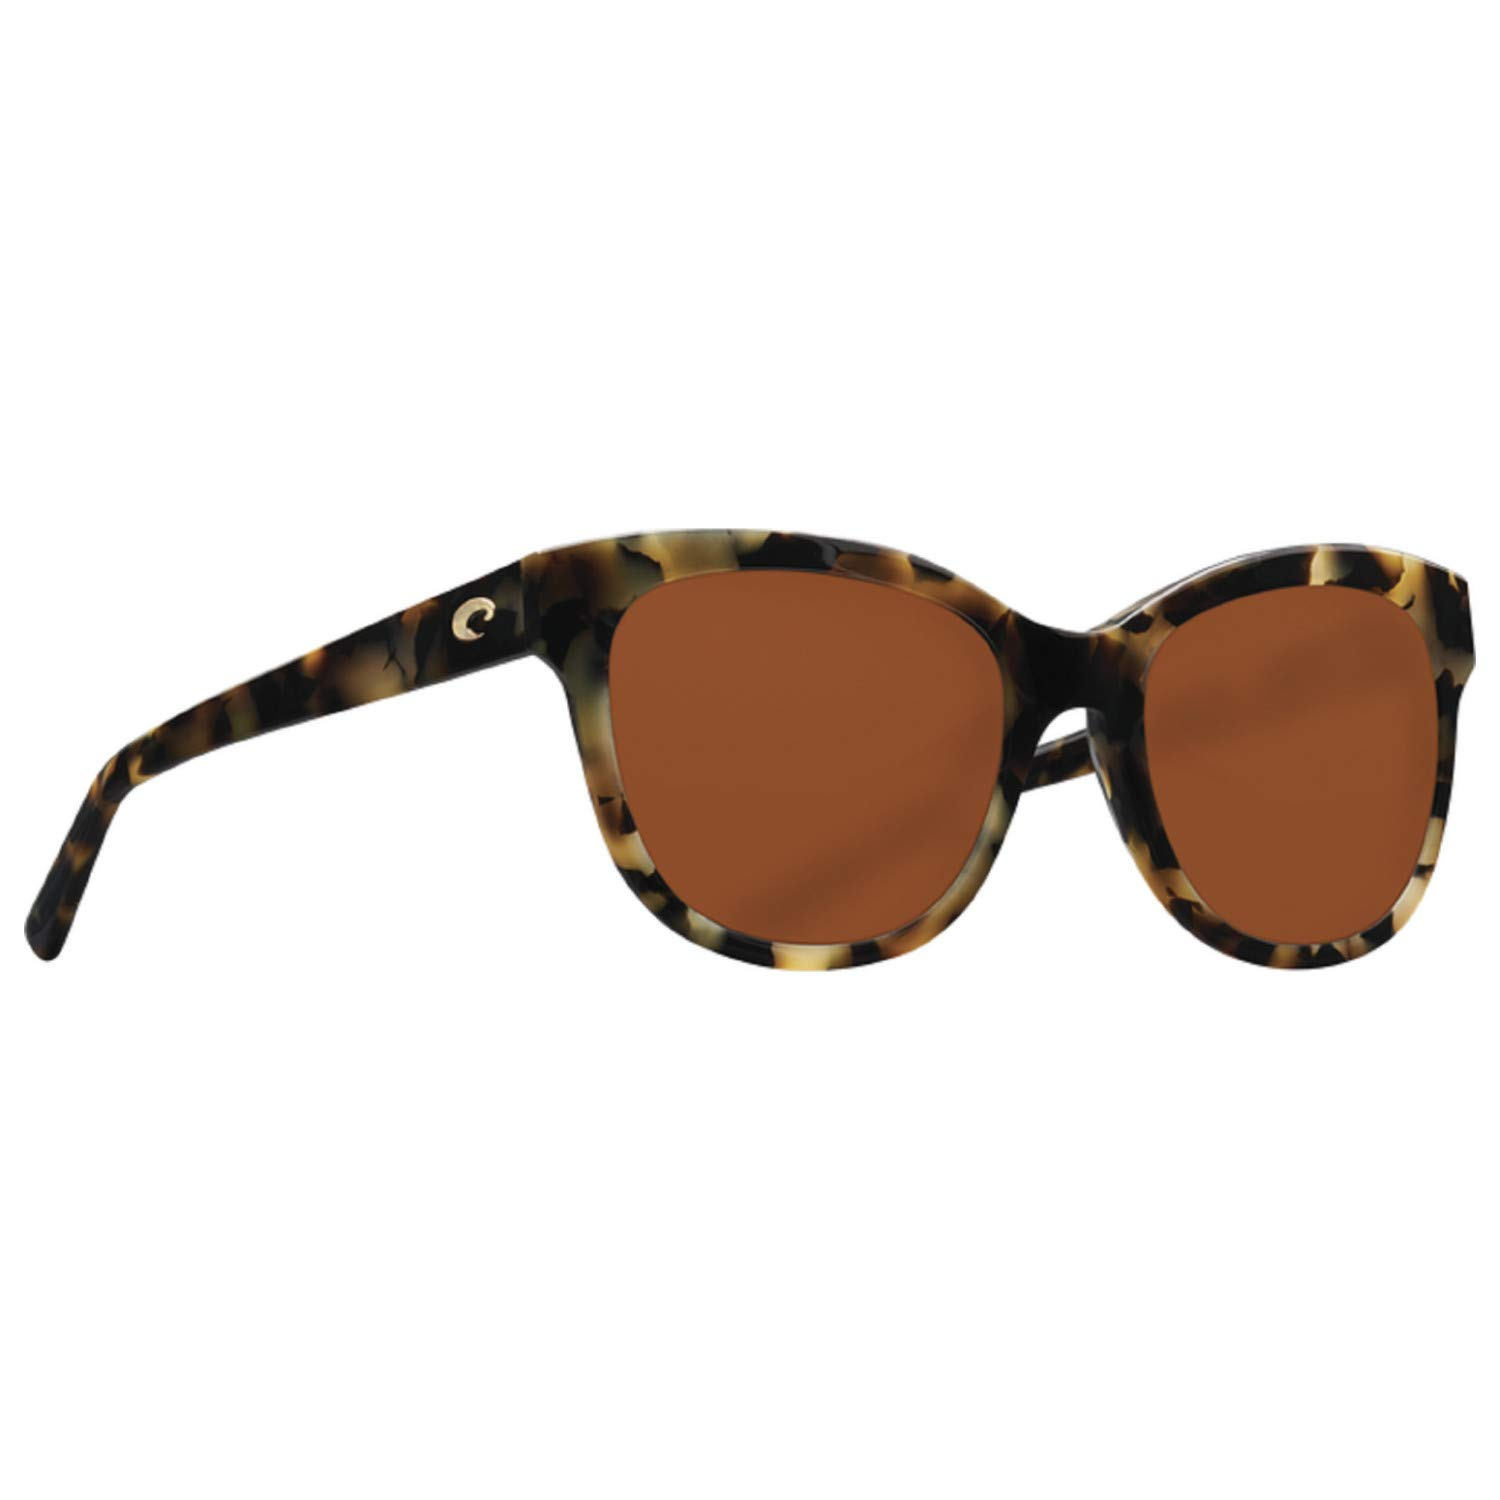 Costa Del Mar Bimini Sunglasses Shiny Vintage Tortoise/Copper 580Glass by Costa Del Mar